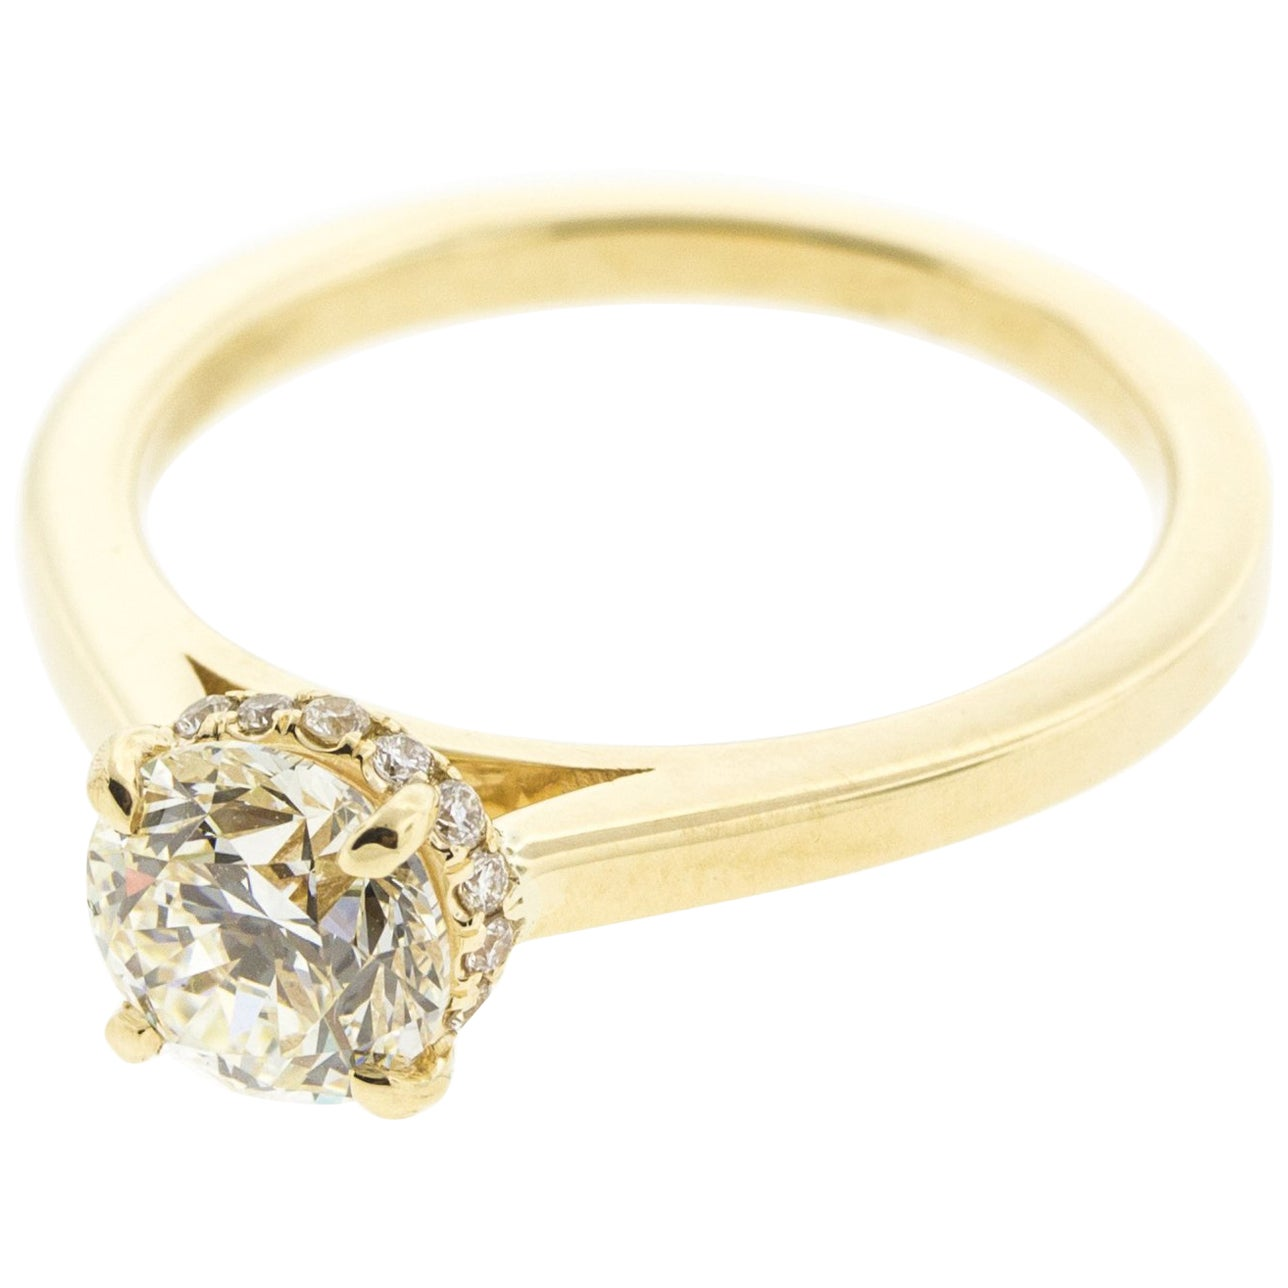 Hidden Halo Diamond Engagement Ring in Yellow Gold 'Certified'